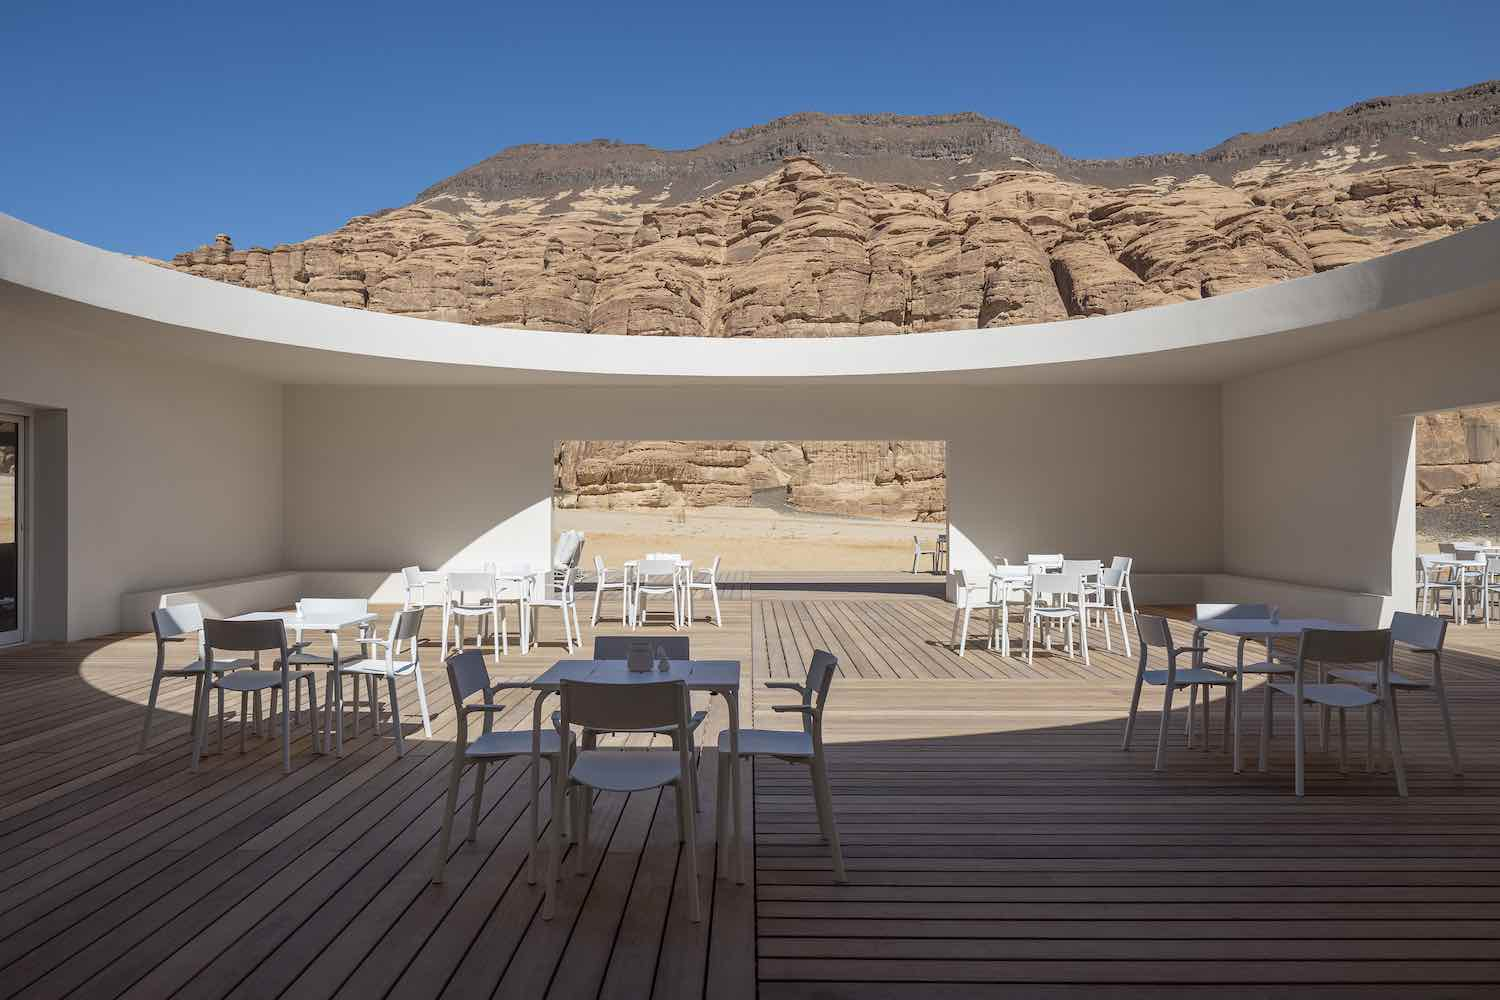 Desert X Al Ula Visitor Centre in Saudi Arabia by KWY.Studio - Photo by Colin Robertson.